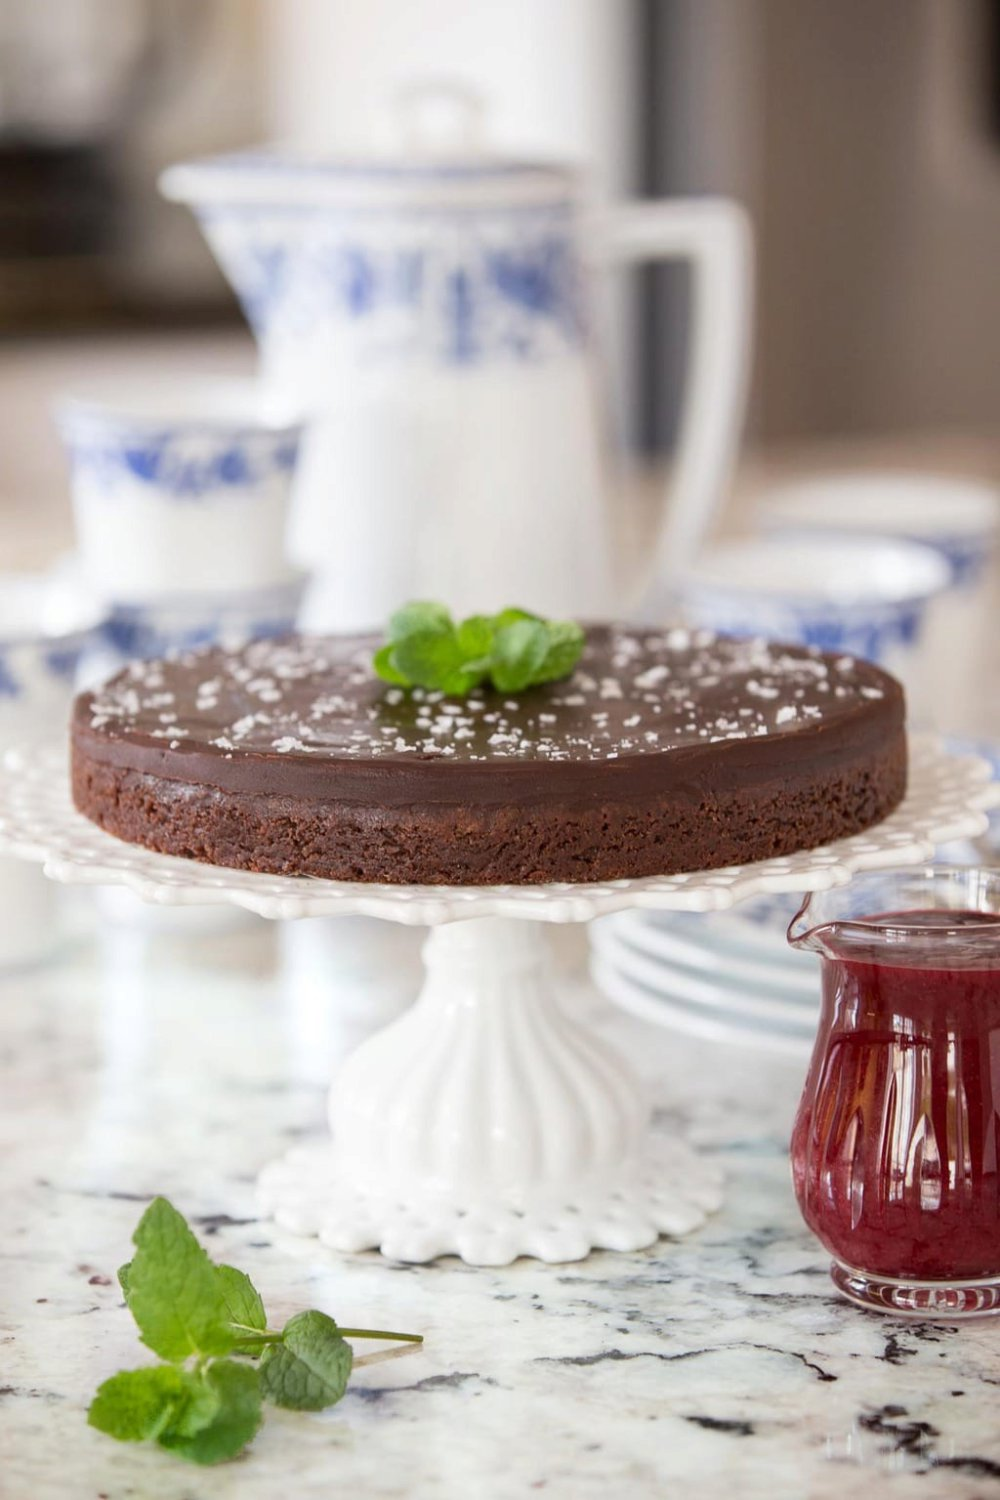 Swedish Sticky Chocolate Cake (Kladdkaffa)